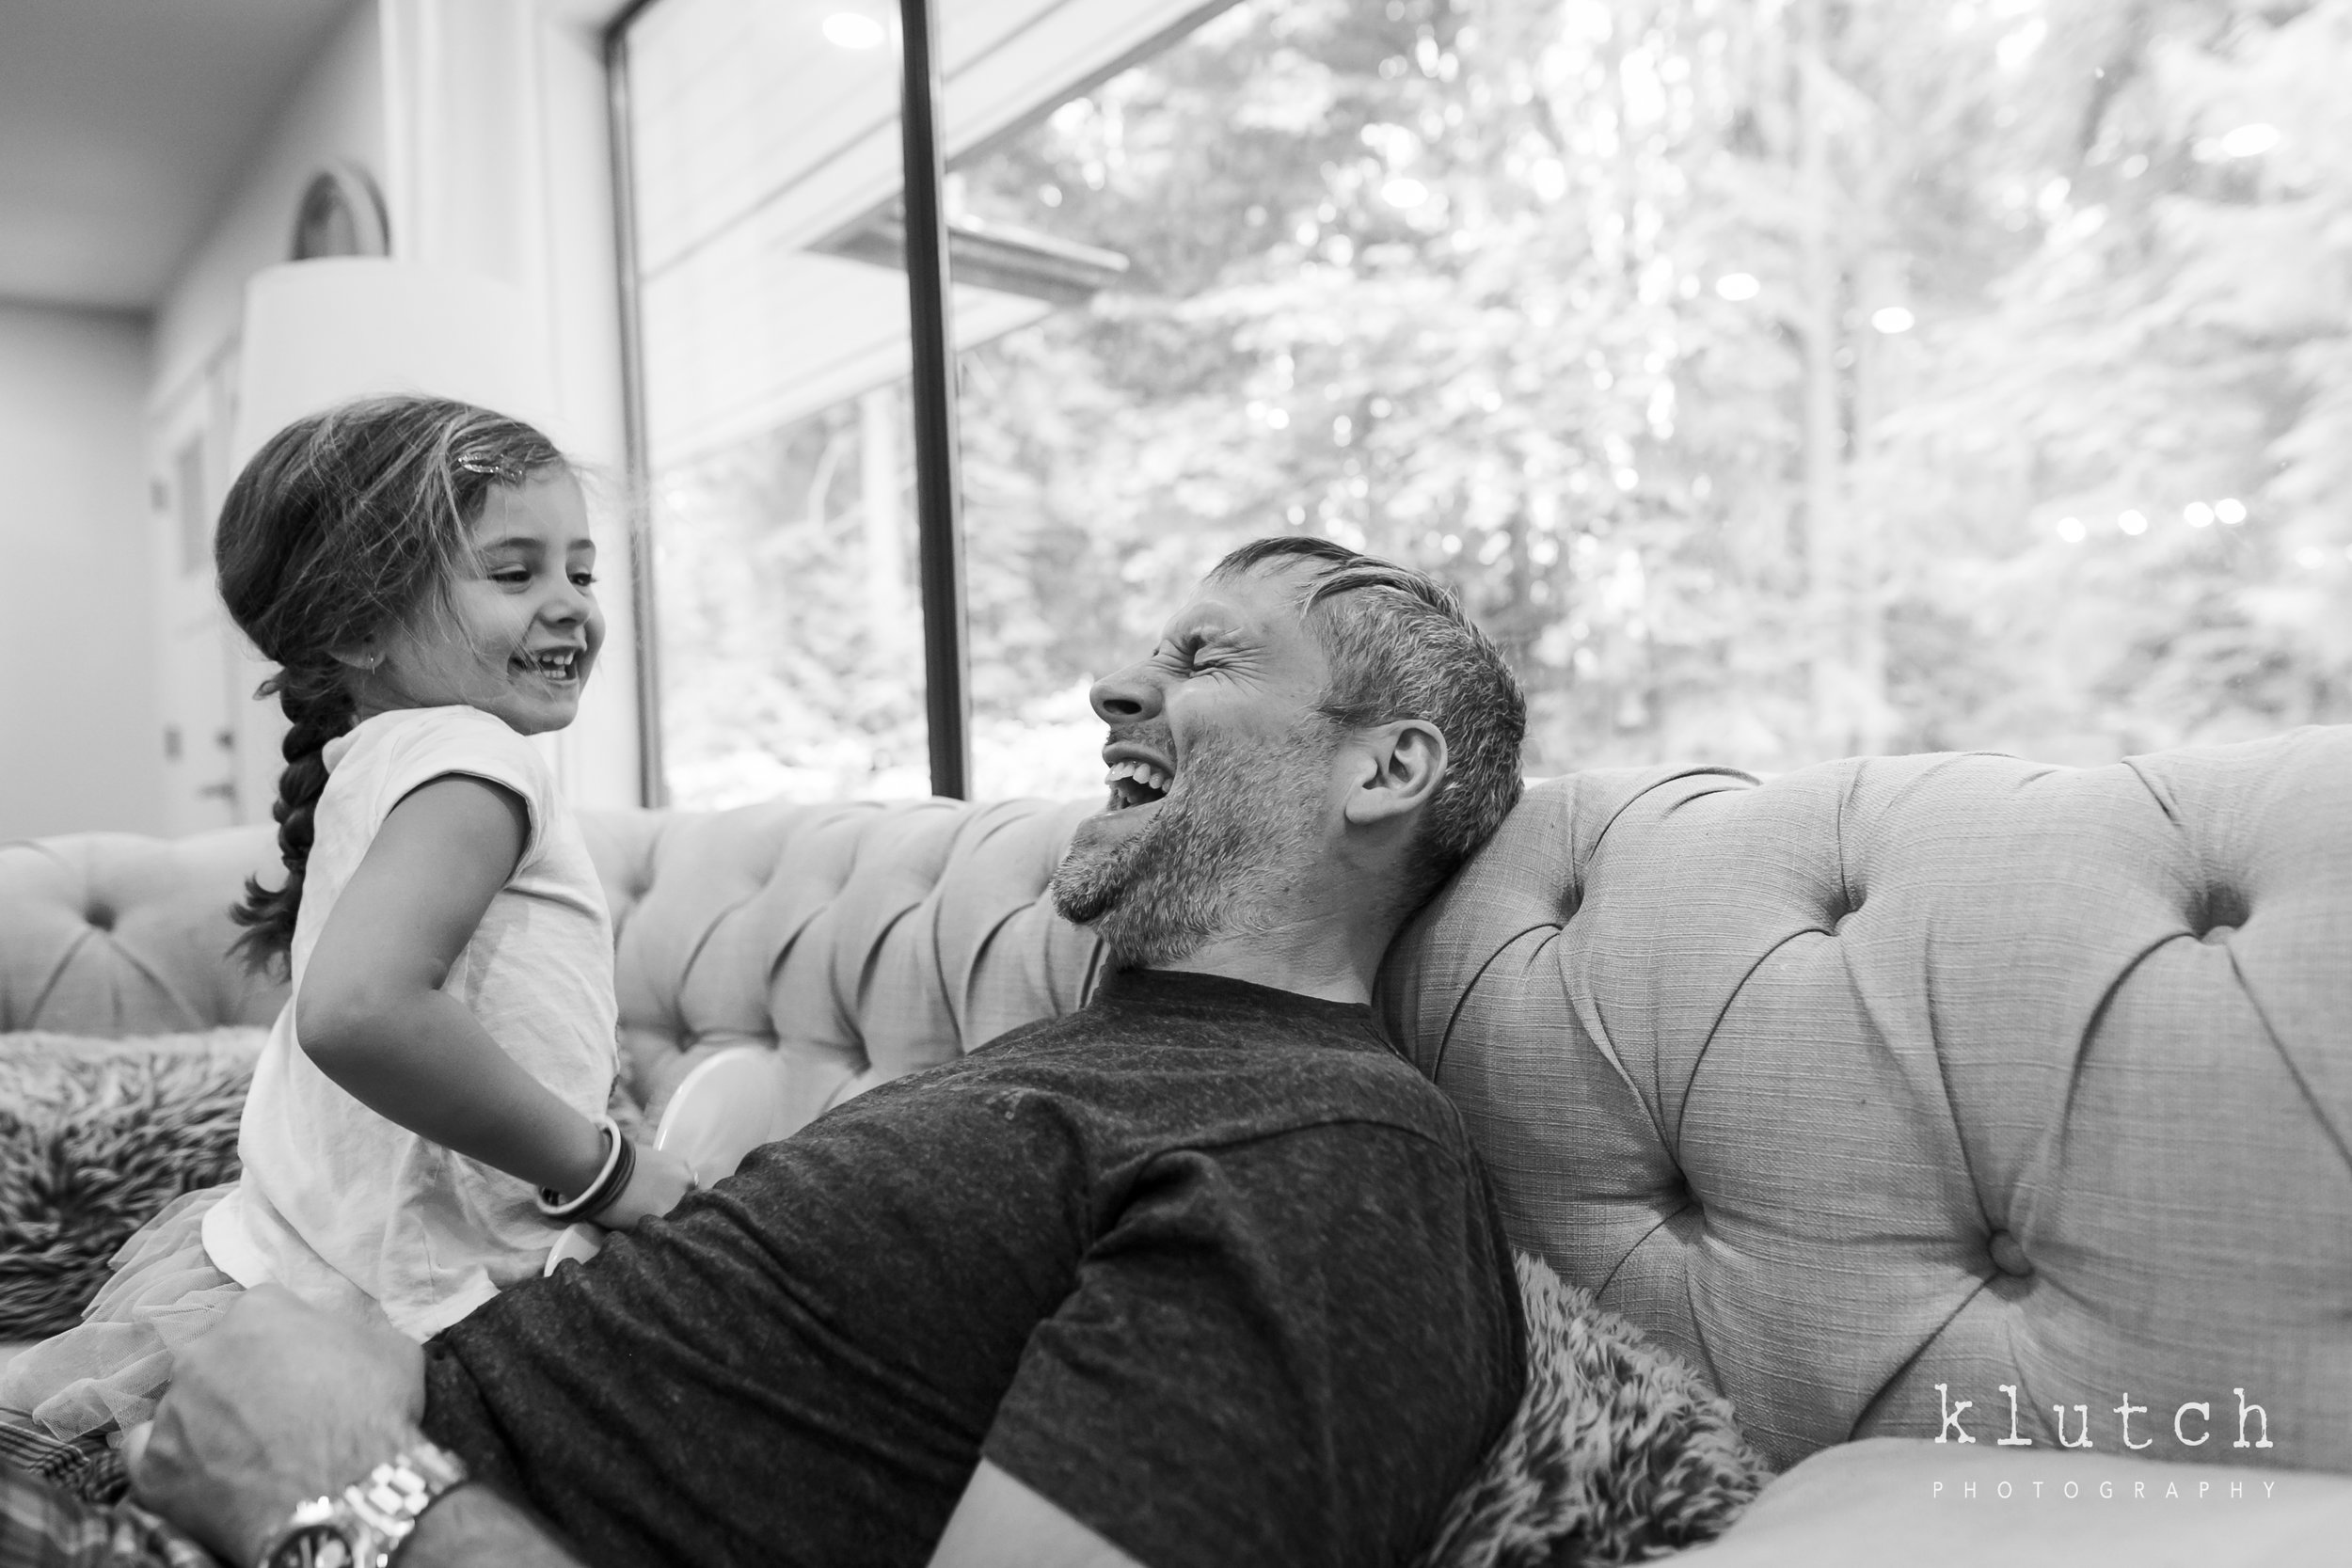 Surrey Family Photographer. Vancouver family photographer, klutch Photography, documentary photography, Vancouver documentary photographer, candid photography, lifestyle photographer, a day in the life session, family photography, Vancouver Photographer, Surrey Family Photographer, White Rock family Photographer, Dina Ferreira Stoddard, dad and daughter laughing-9858.jpg